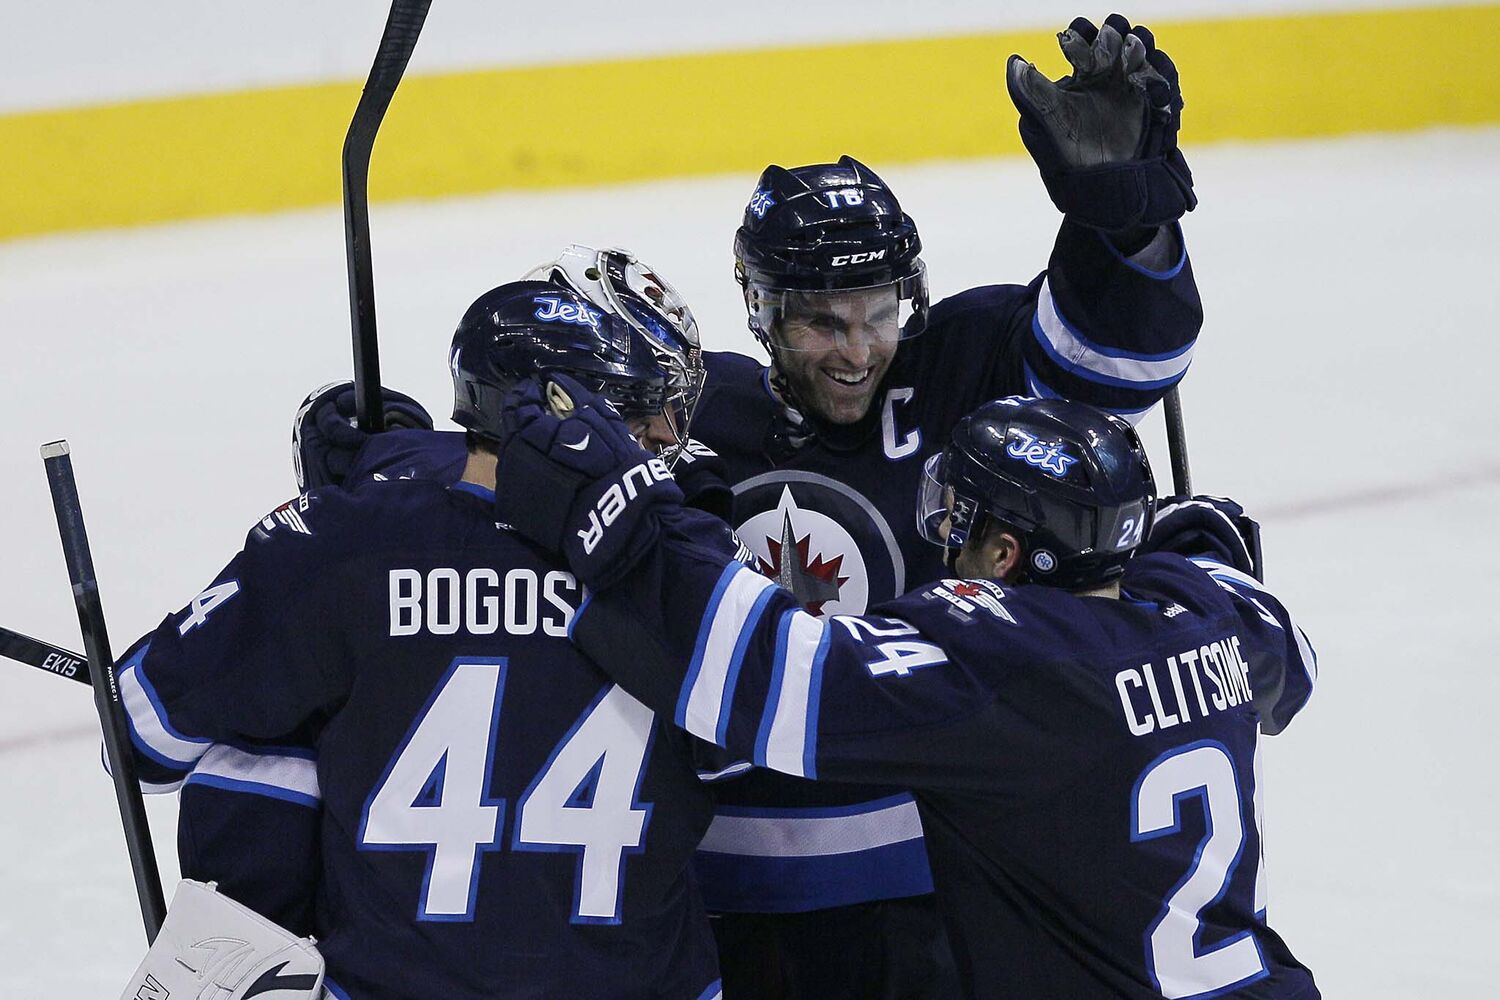 Winnipeg Jets' Zach Bogosian (44), goaltender Ondrej Pavelec (31), Andrew Ladd (16) and Grant Clitsome (24) celebrate their win over the over San Jose Sharks.